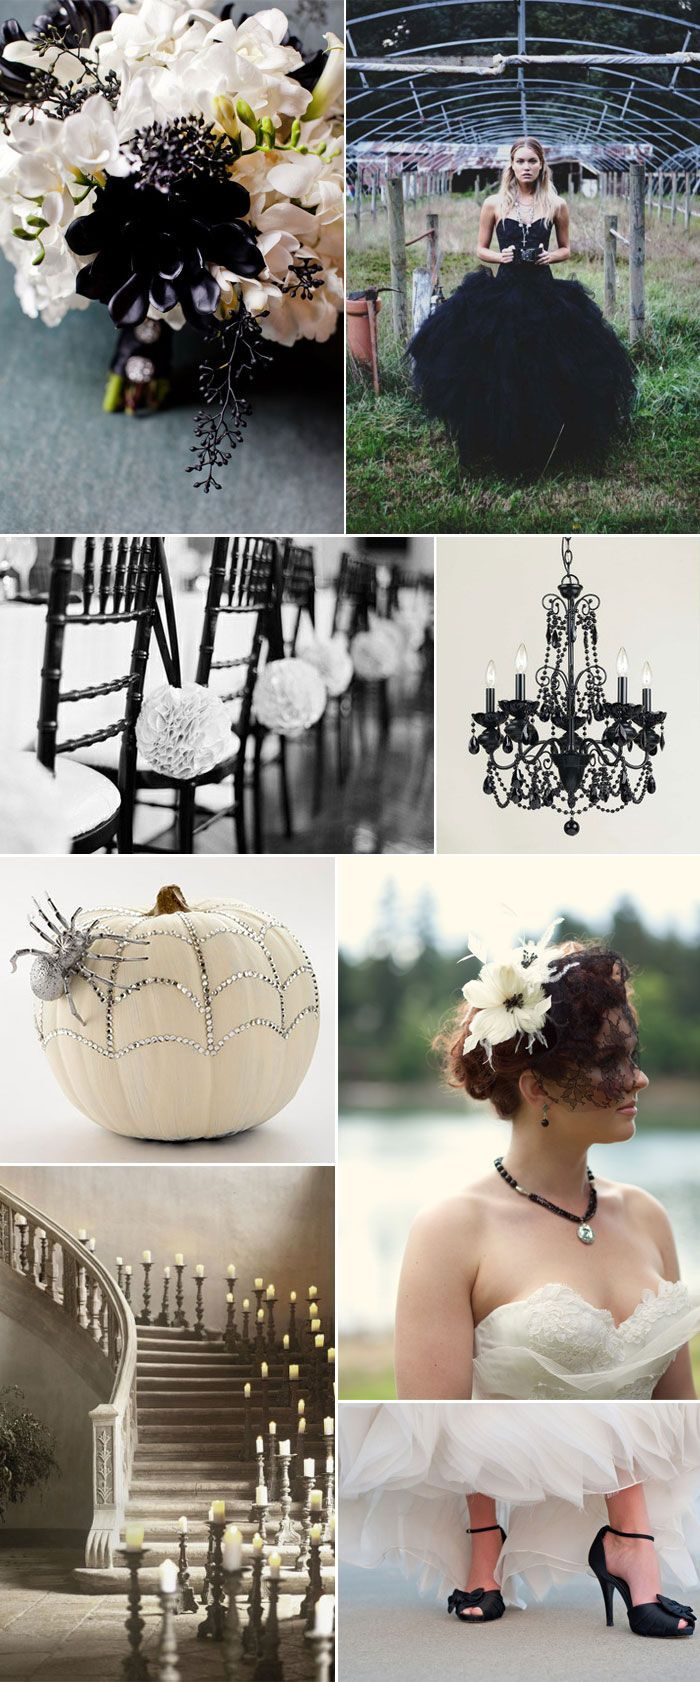 I dont like all of these pics but i love the candles by the stairs - halloween wedding decoration ideas